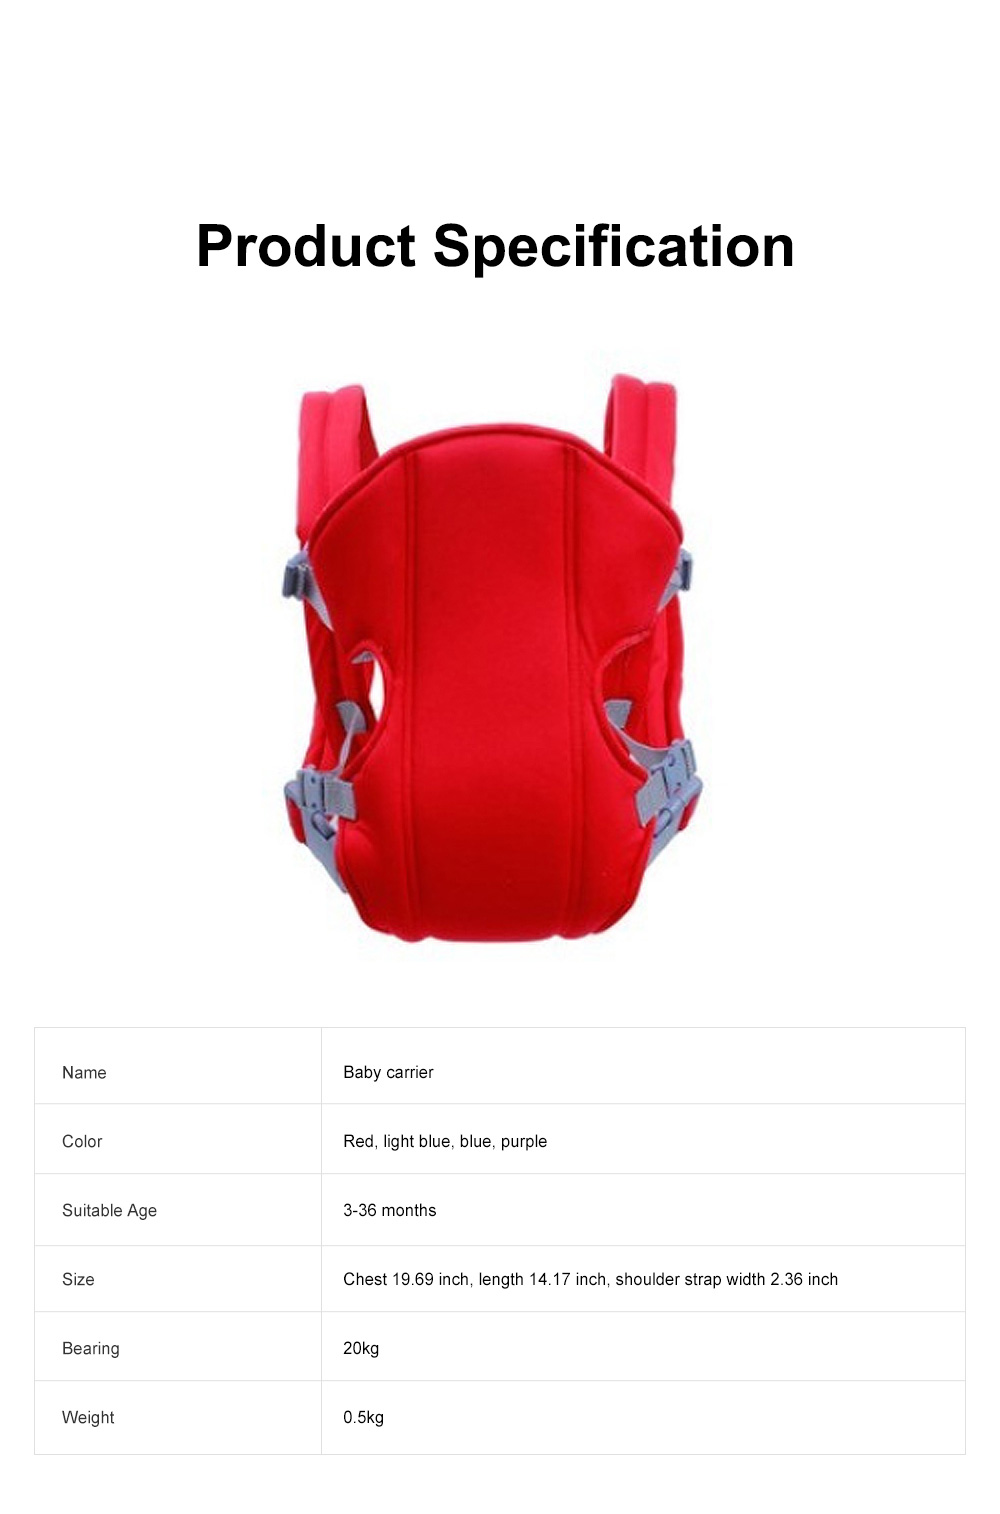 Multifunctional Breathable Newborn Baby Carrier, Adjustable Infant Front Sling Backpack with Safety Buckle 6